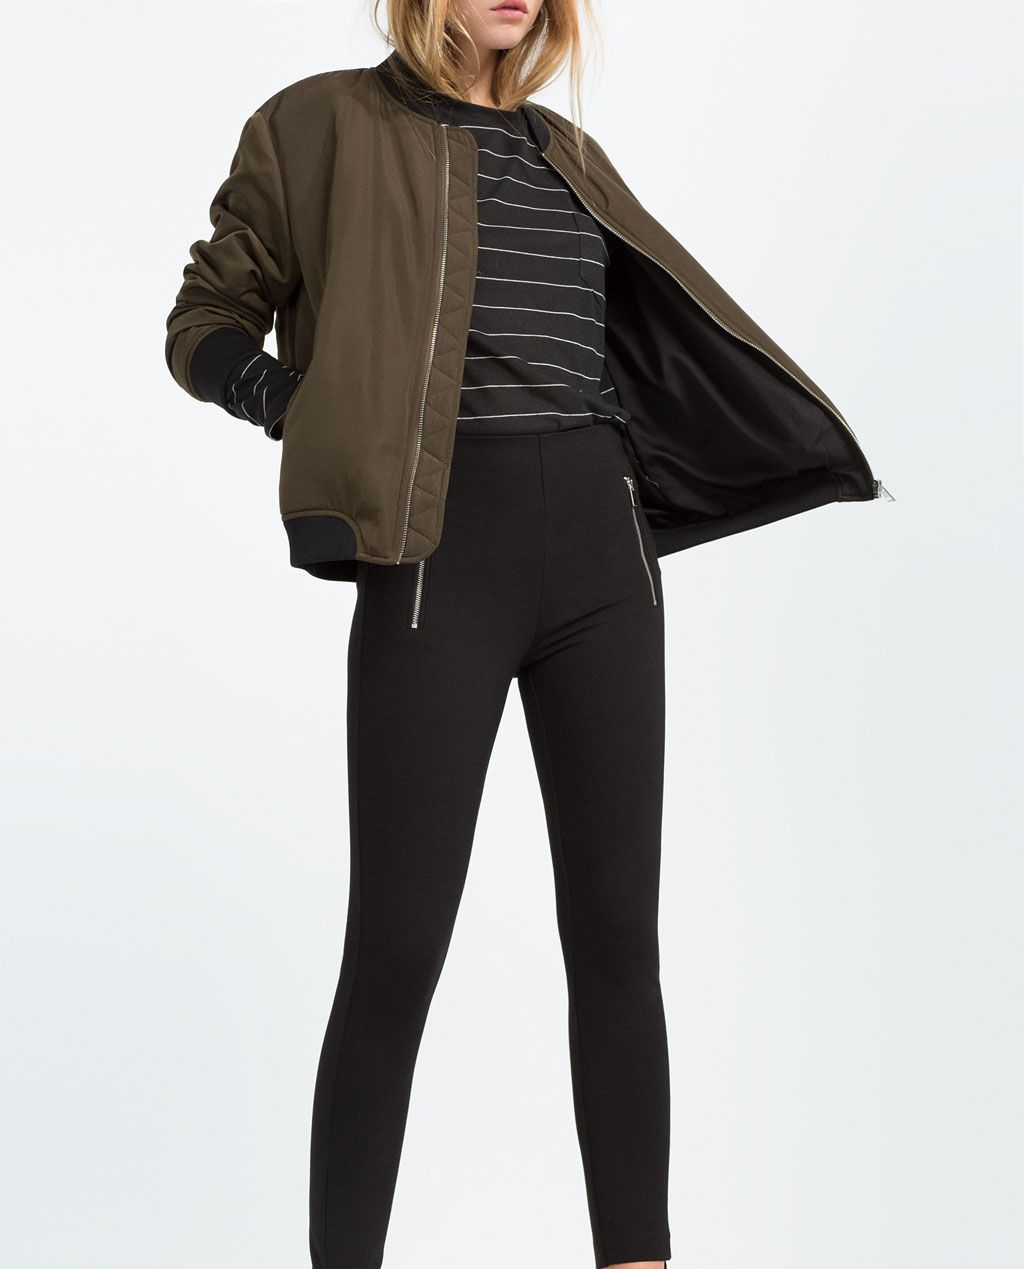 35e35ccd660d45 Image 1 of SIDE ZIP LEGGINGS from Zara Zara Women, Trousers Women, Black  Jeans